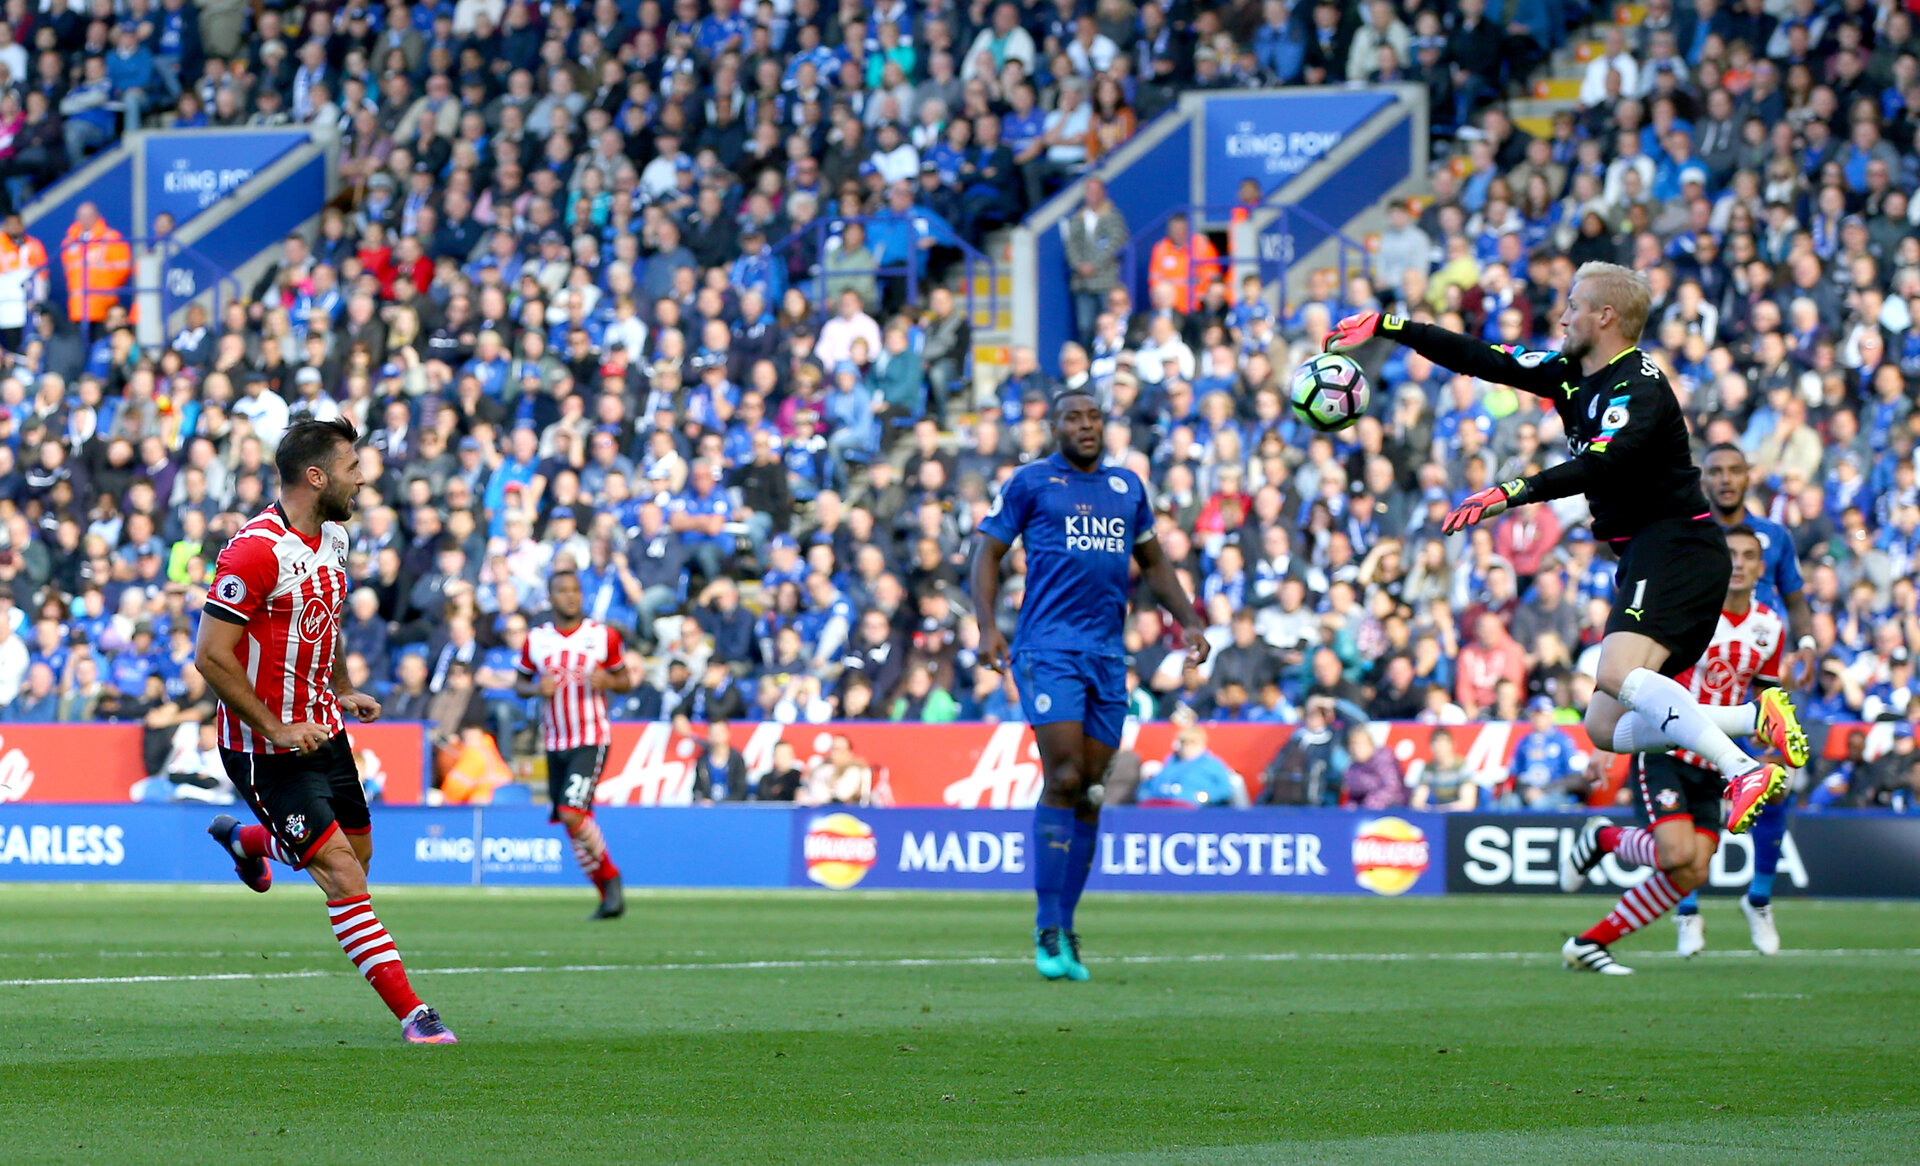 Charlie Austin is denied by kasper Schmeicel  during the Premier League match between Leicester City and Southampton at the King Power Stadium, Leicester, England on 2 October 2016. Photo by Matt  Watson/SFC/Digital South.